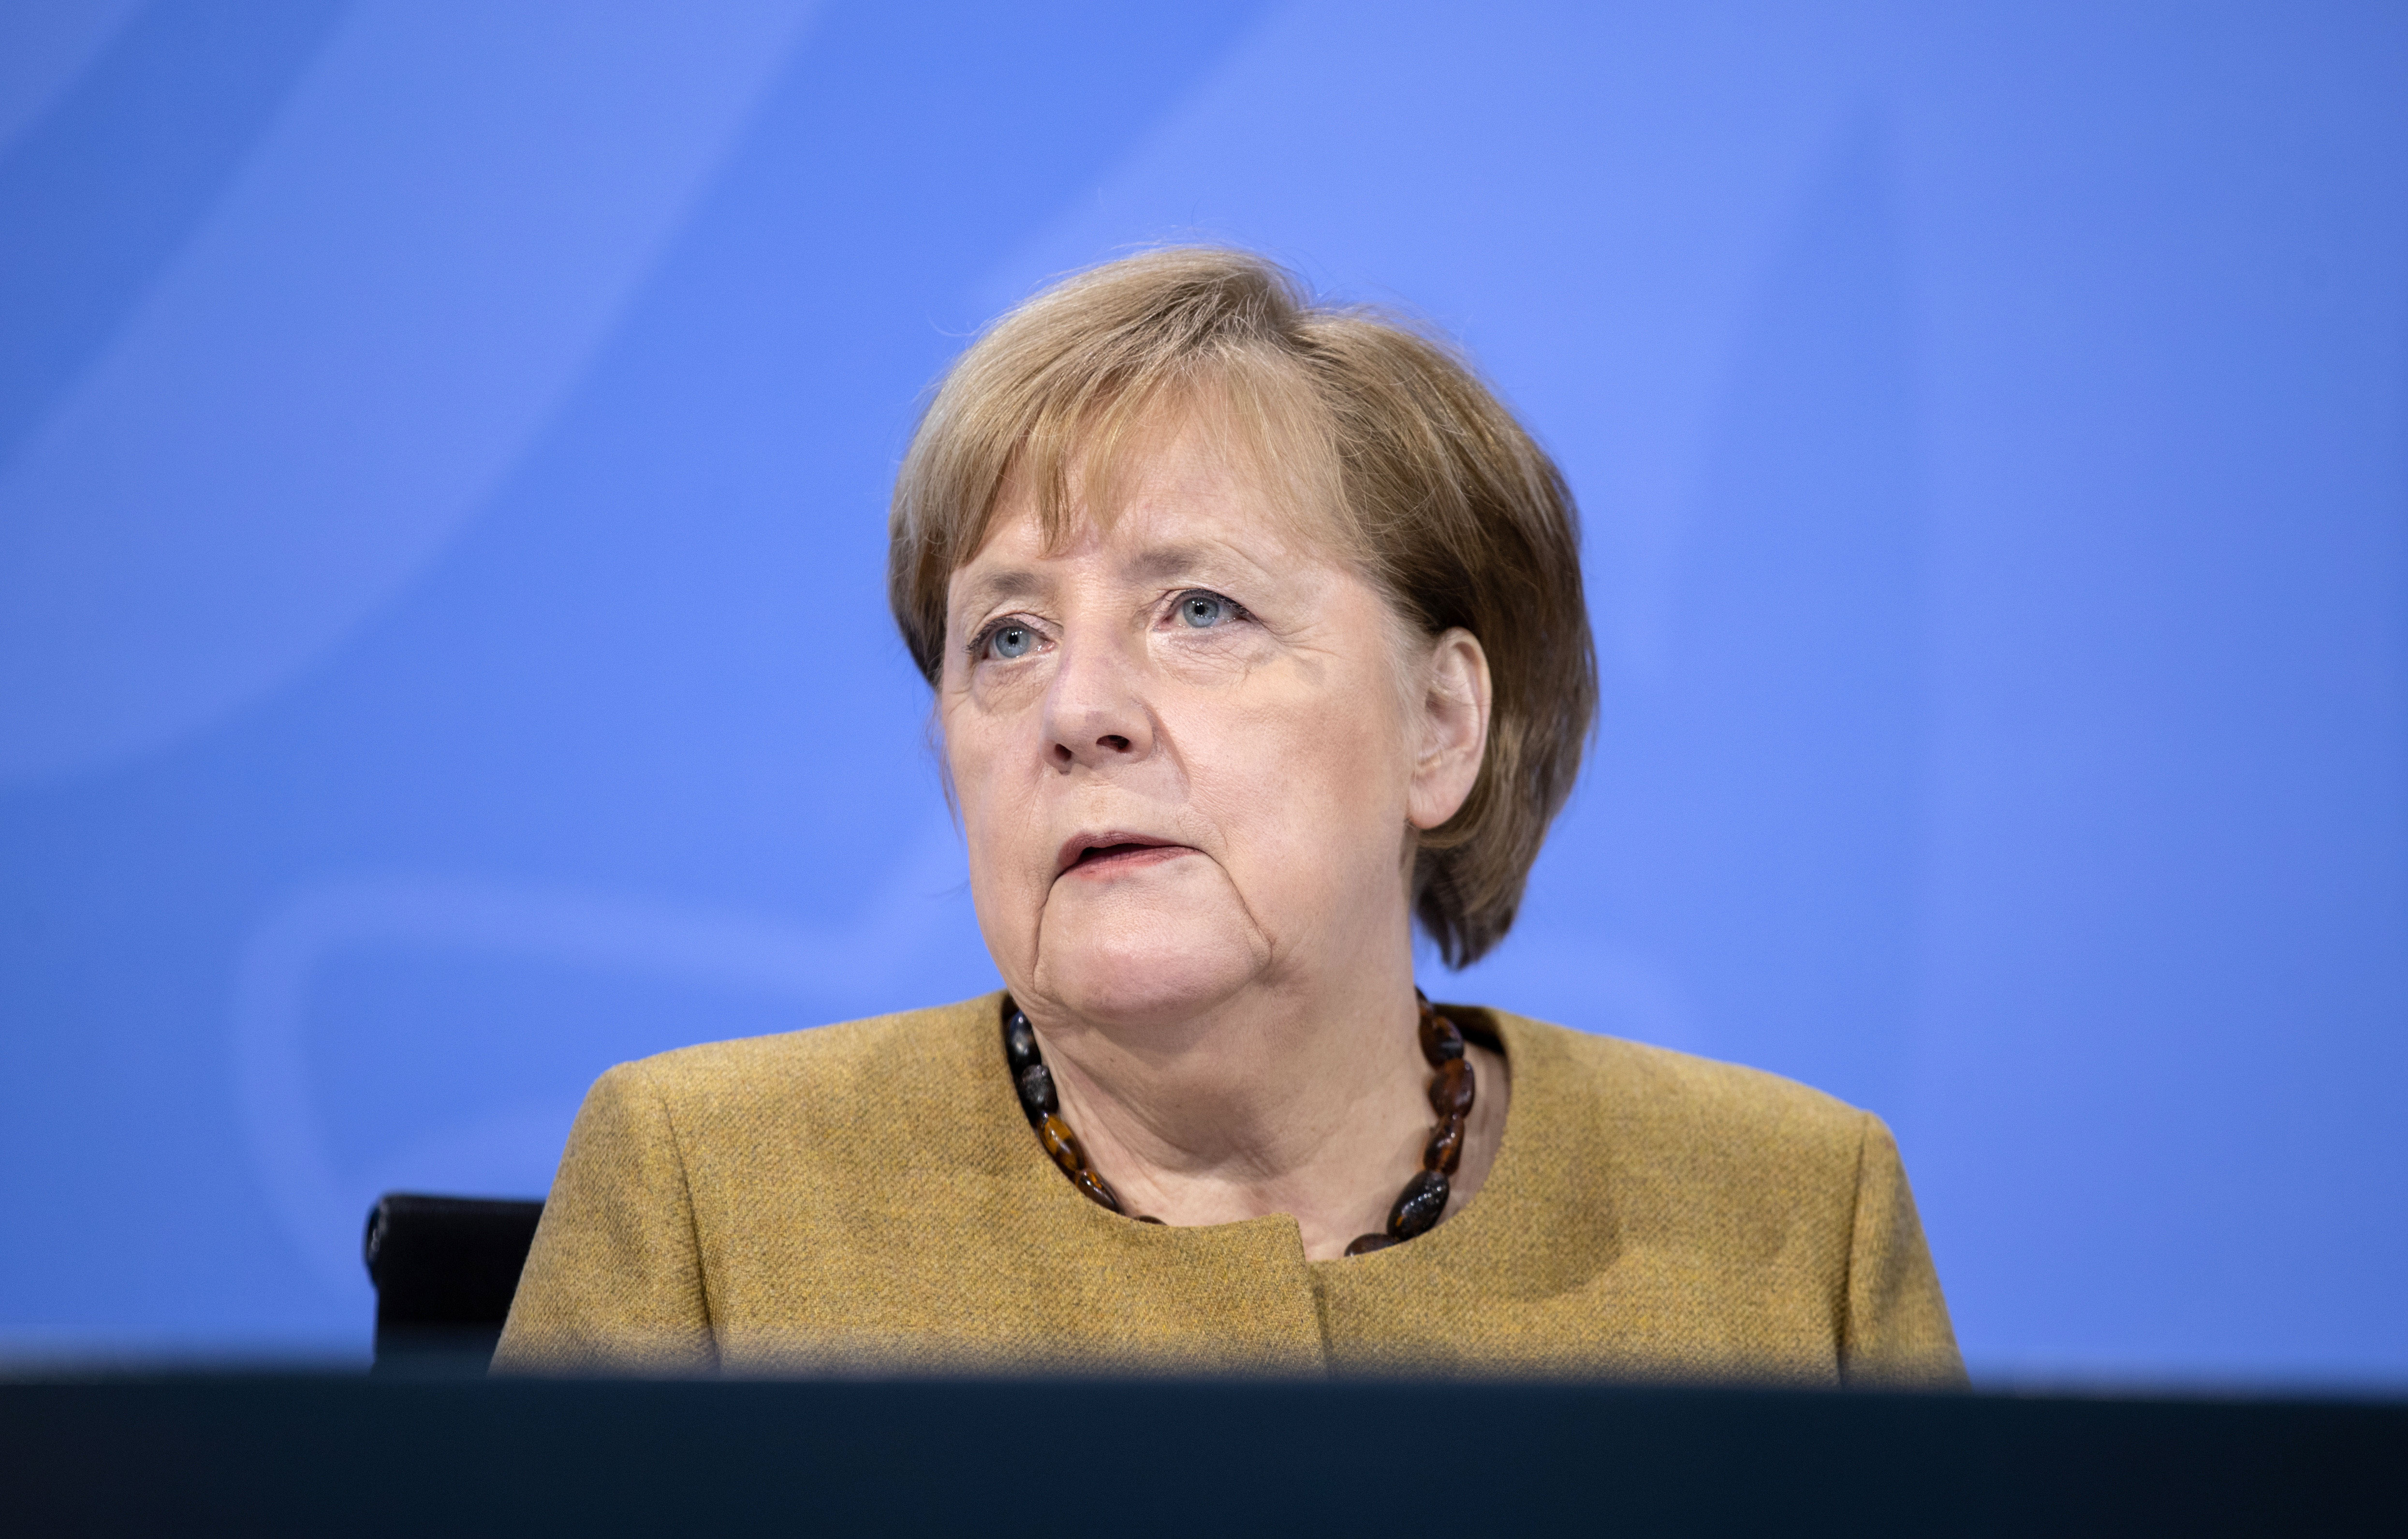 German Chancellor Angela Merkel holds a press briefing on January 5 in Berlin.